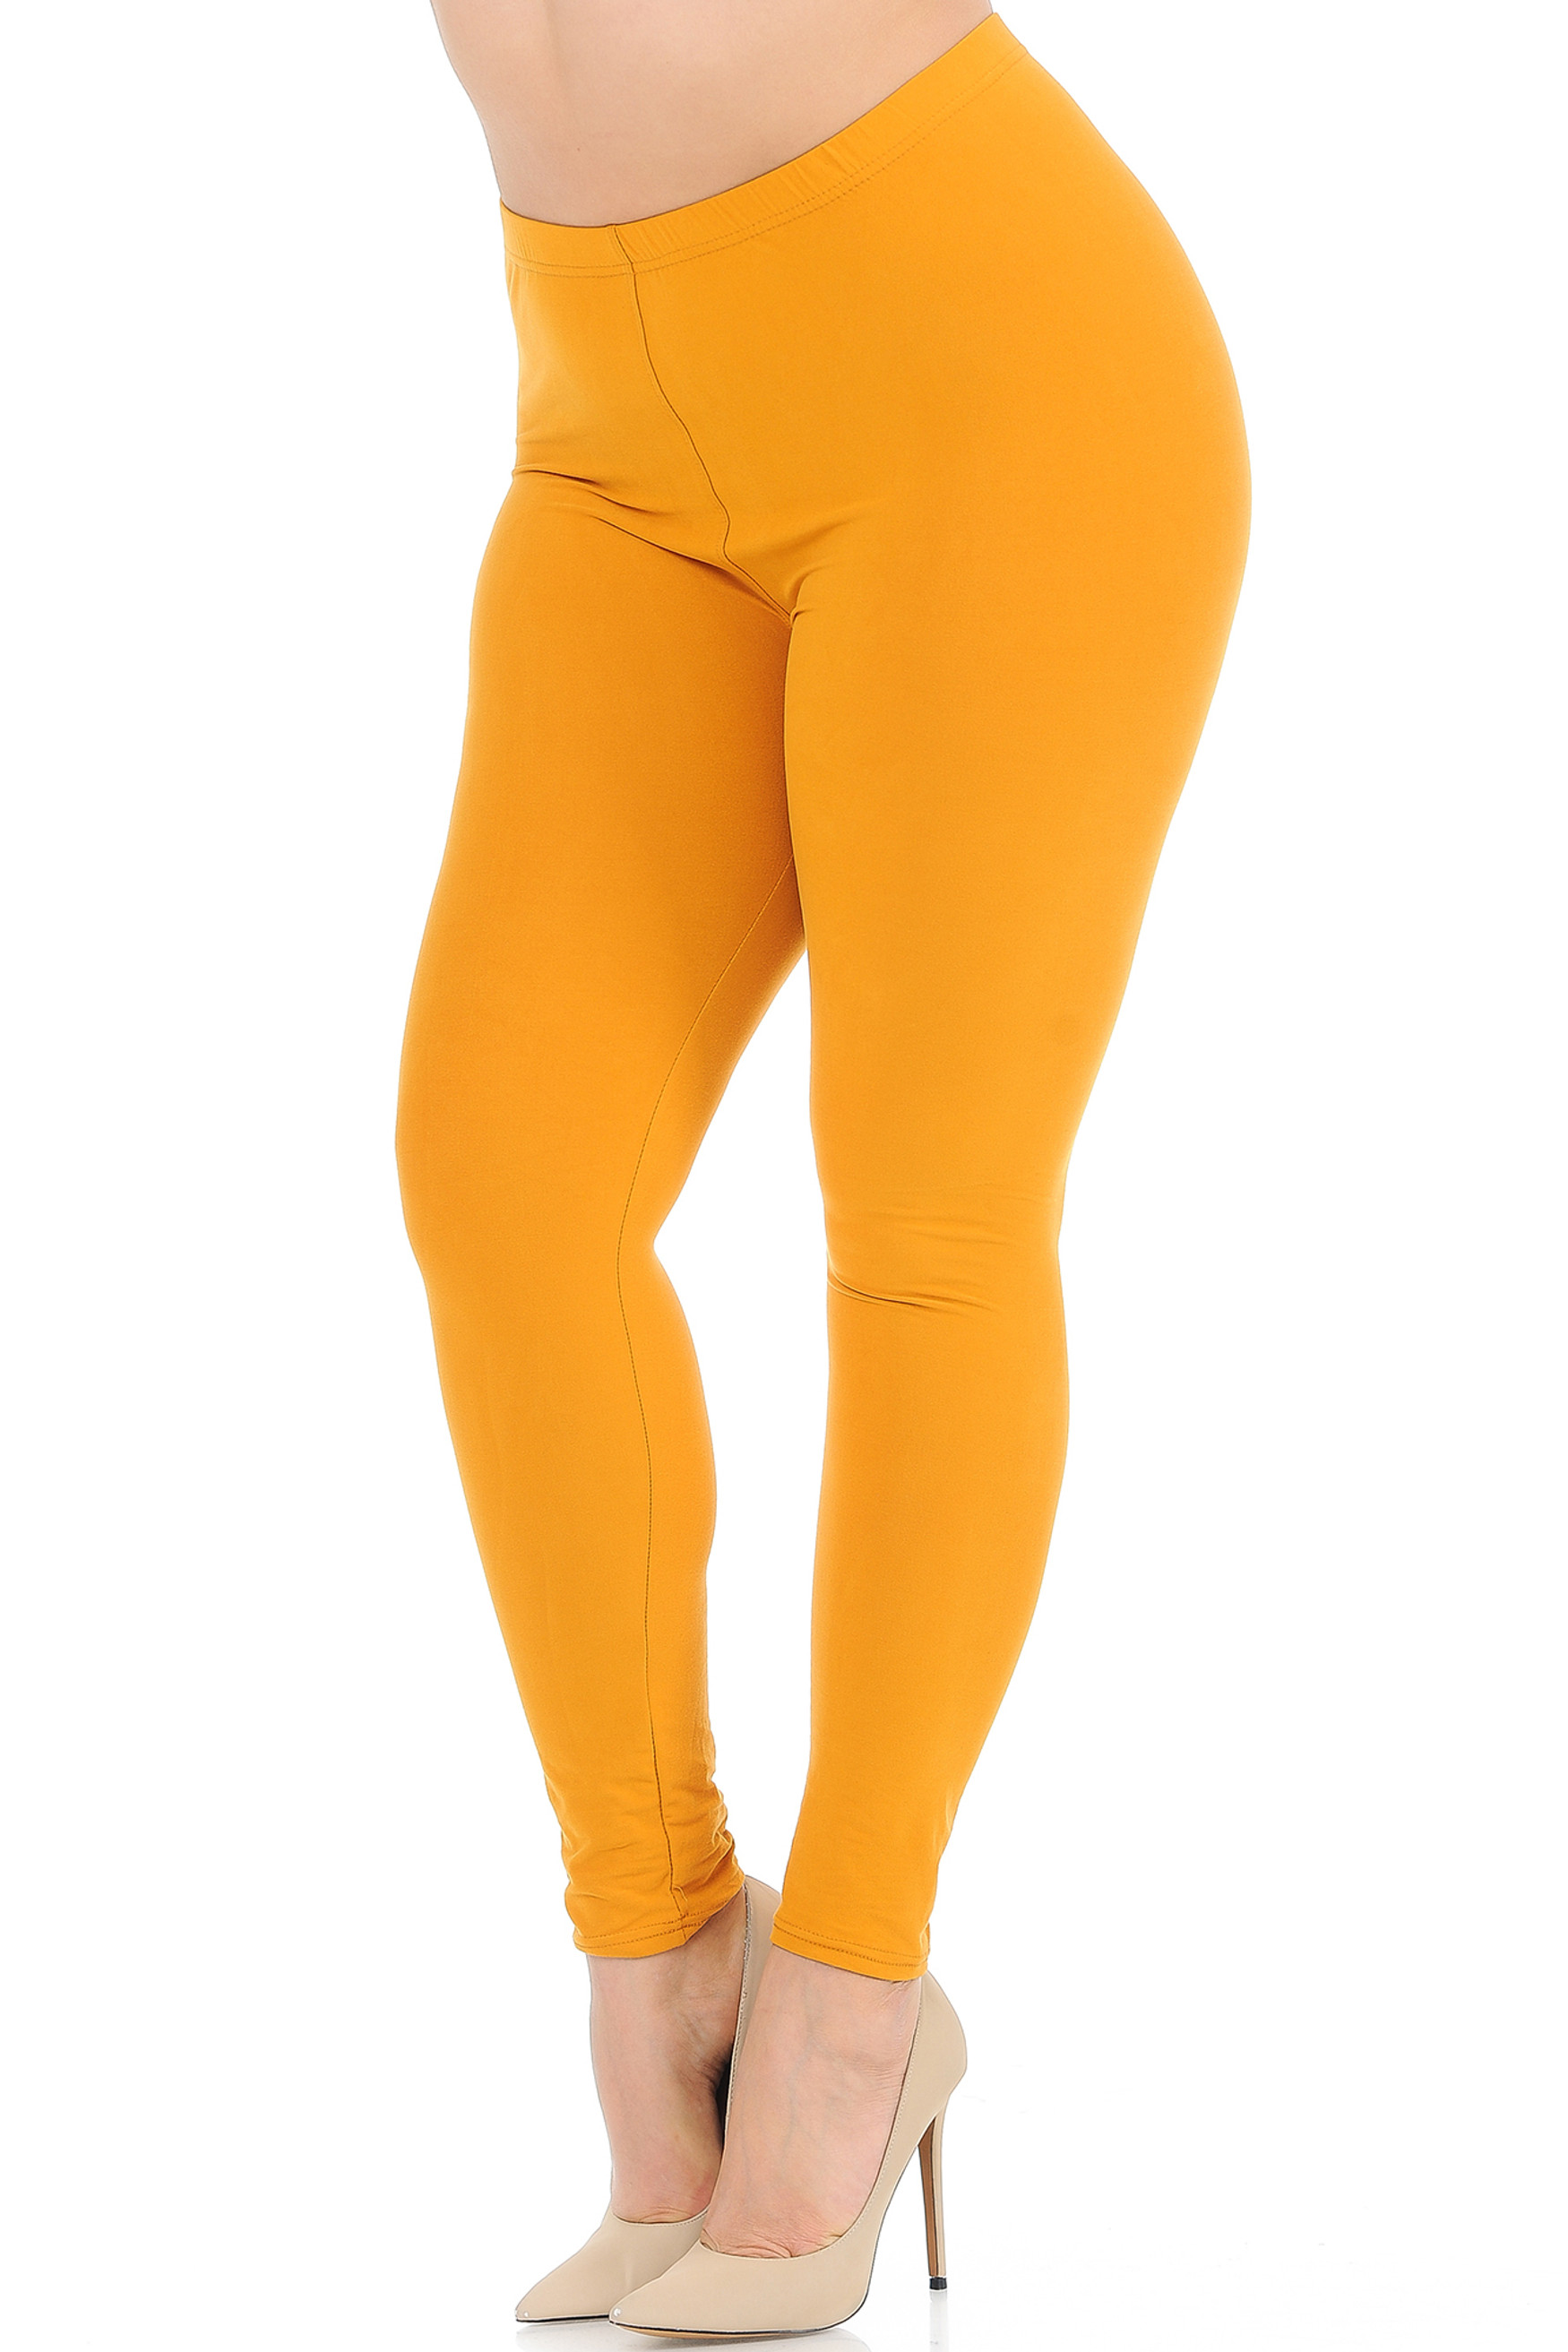 45 degree view of Mustard Buttery Soft Solid Basic Extra Plus Size Capris - 3X-5X - New Mix